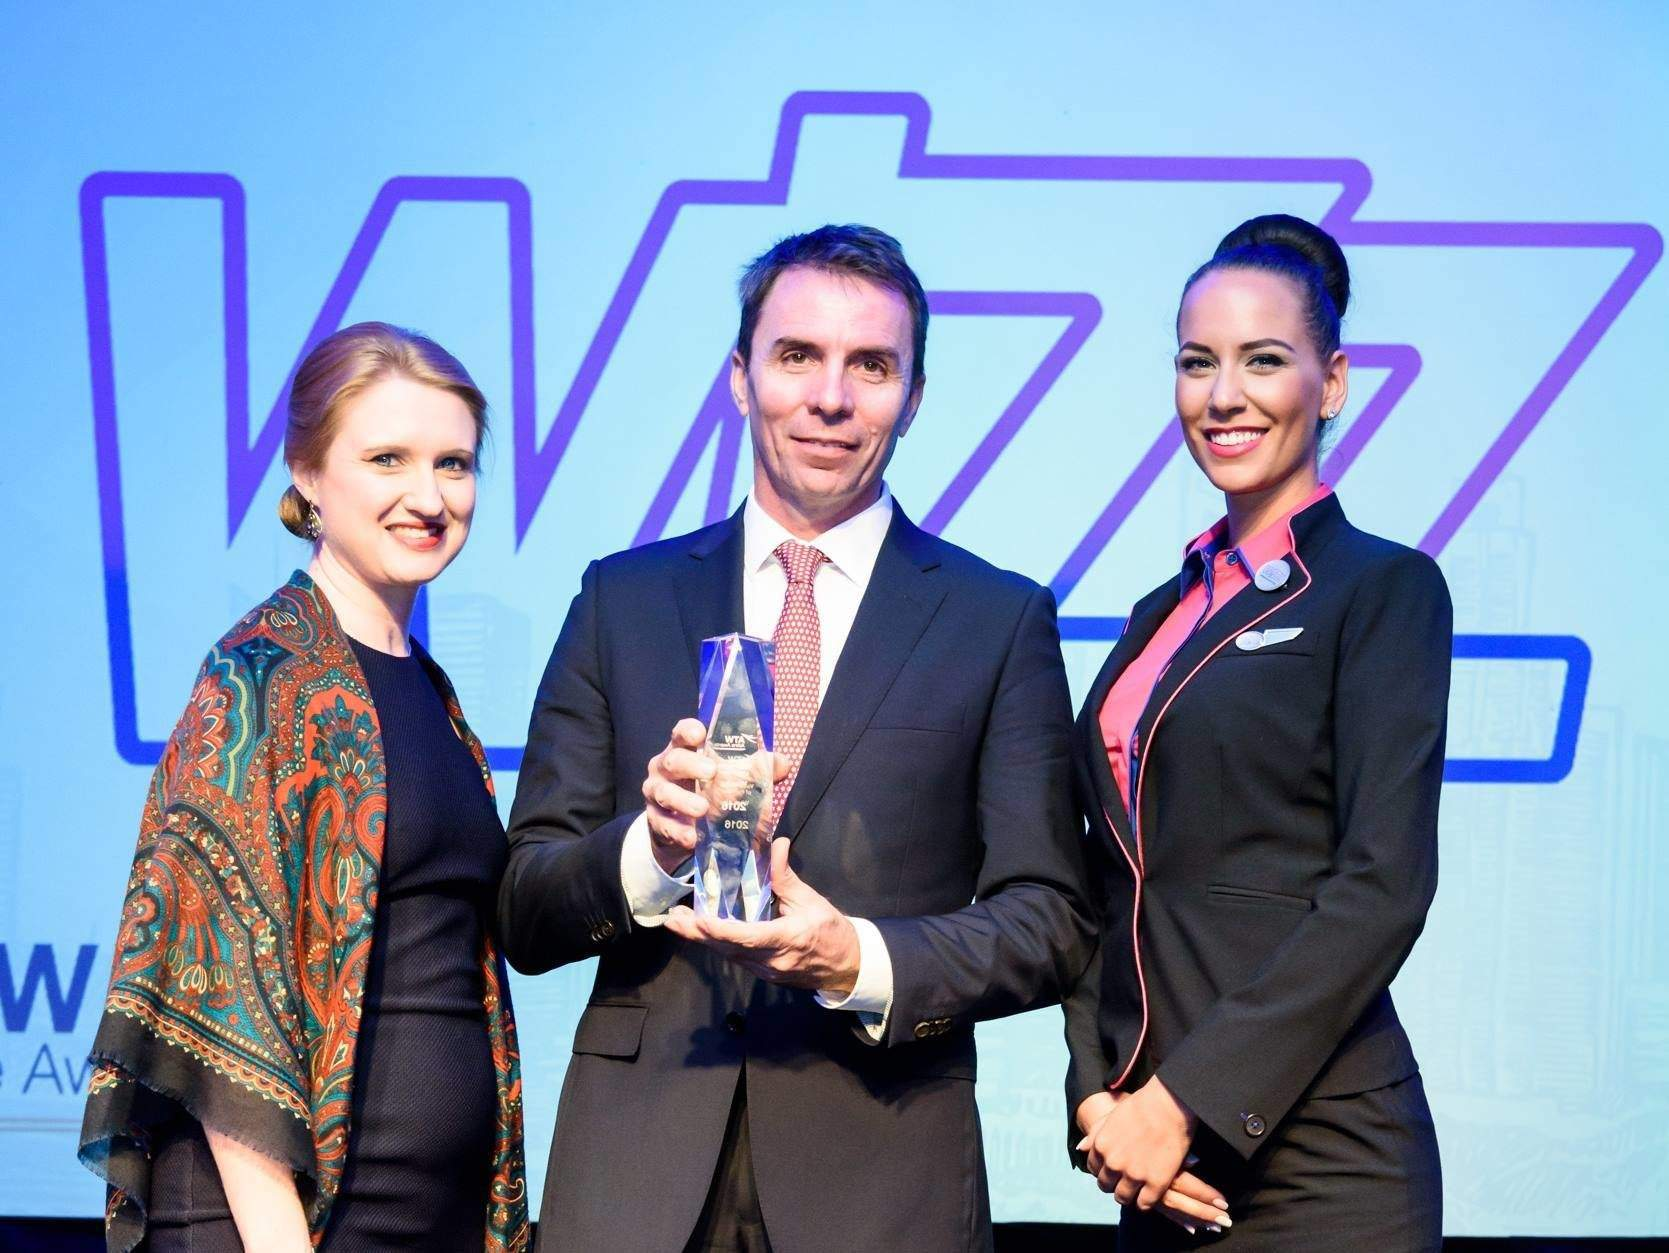 Wizz Air won Value Airline of the Year award